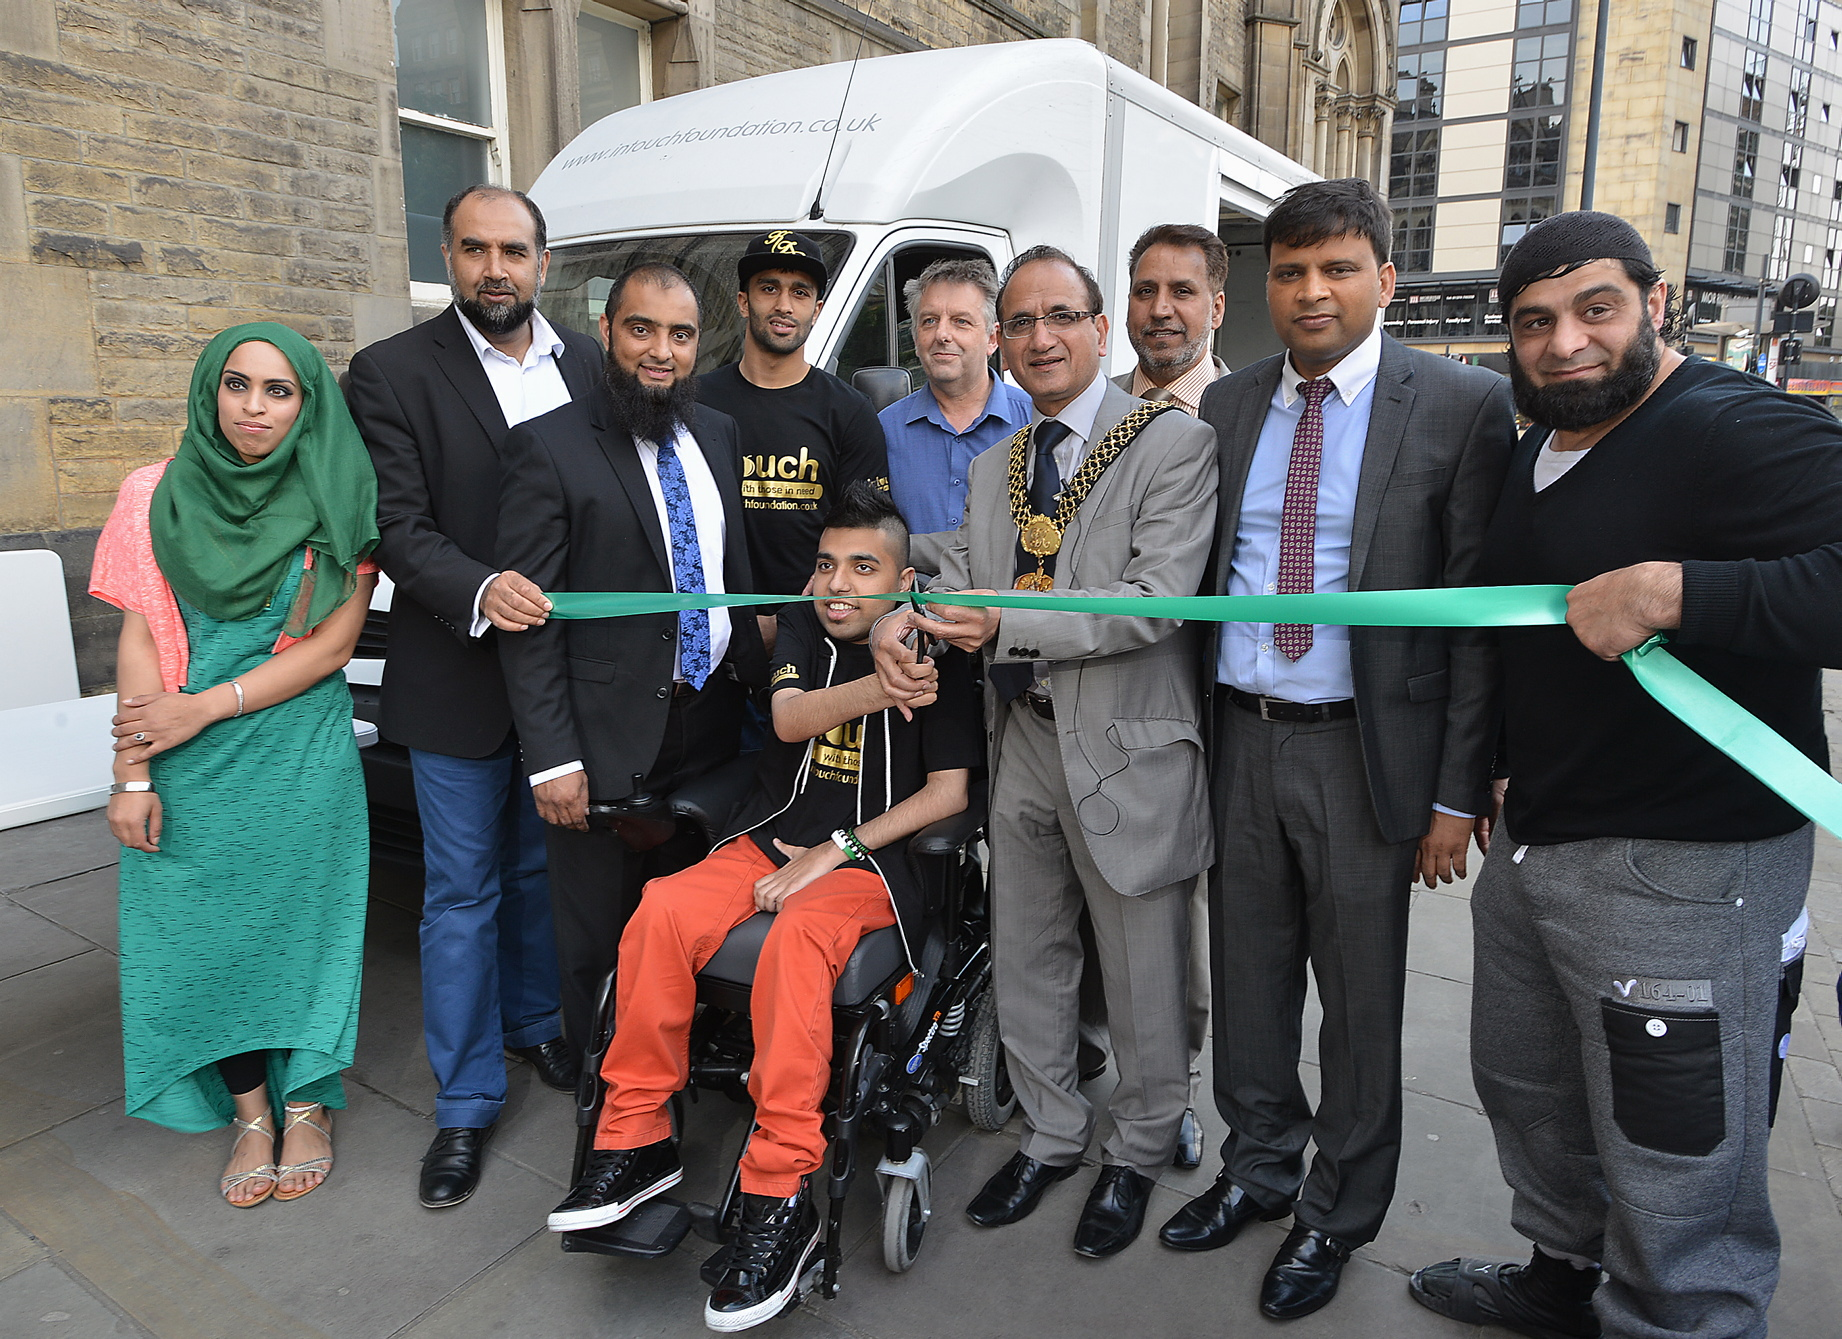 Lord Mayor of Bradford, Keighley councillor Khadim Hussain, cuts the ribbon to officially unveil the Intouch Foundation's new soup kitchen, which will serve both towns